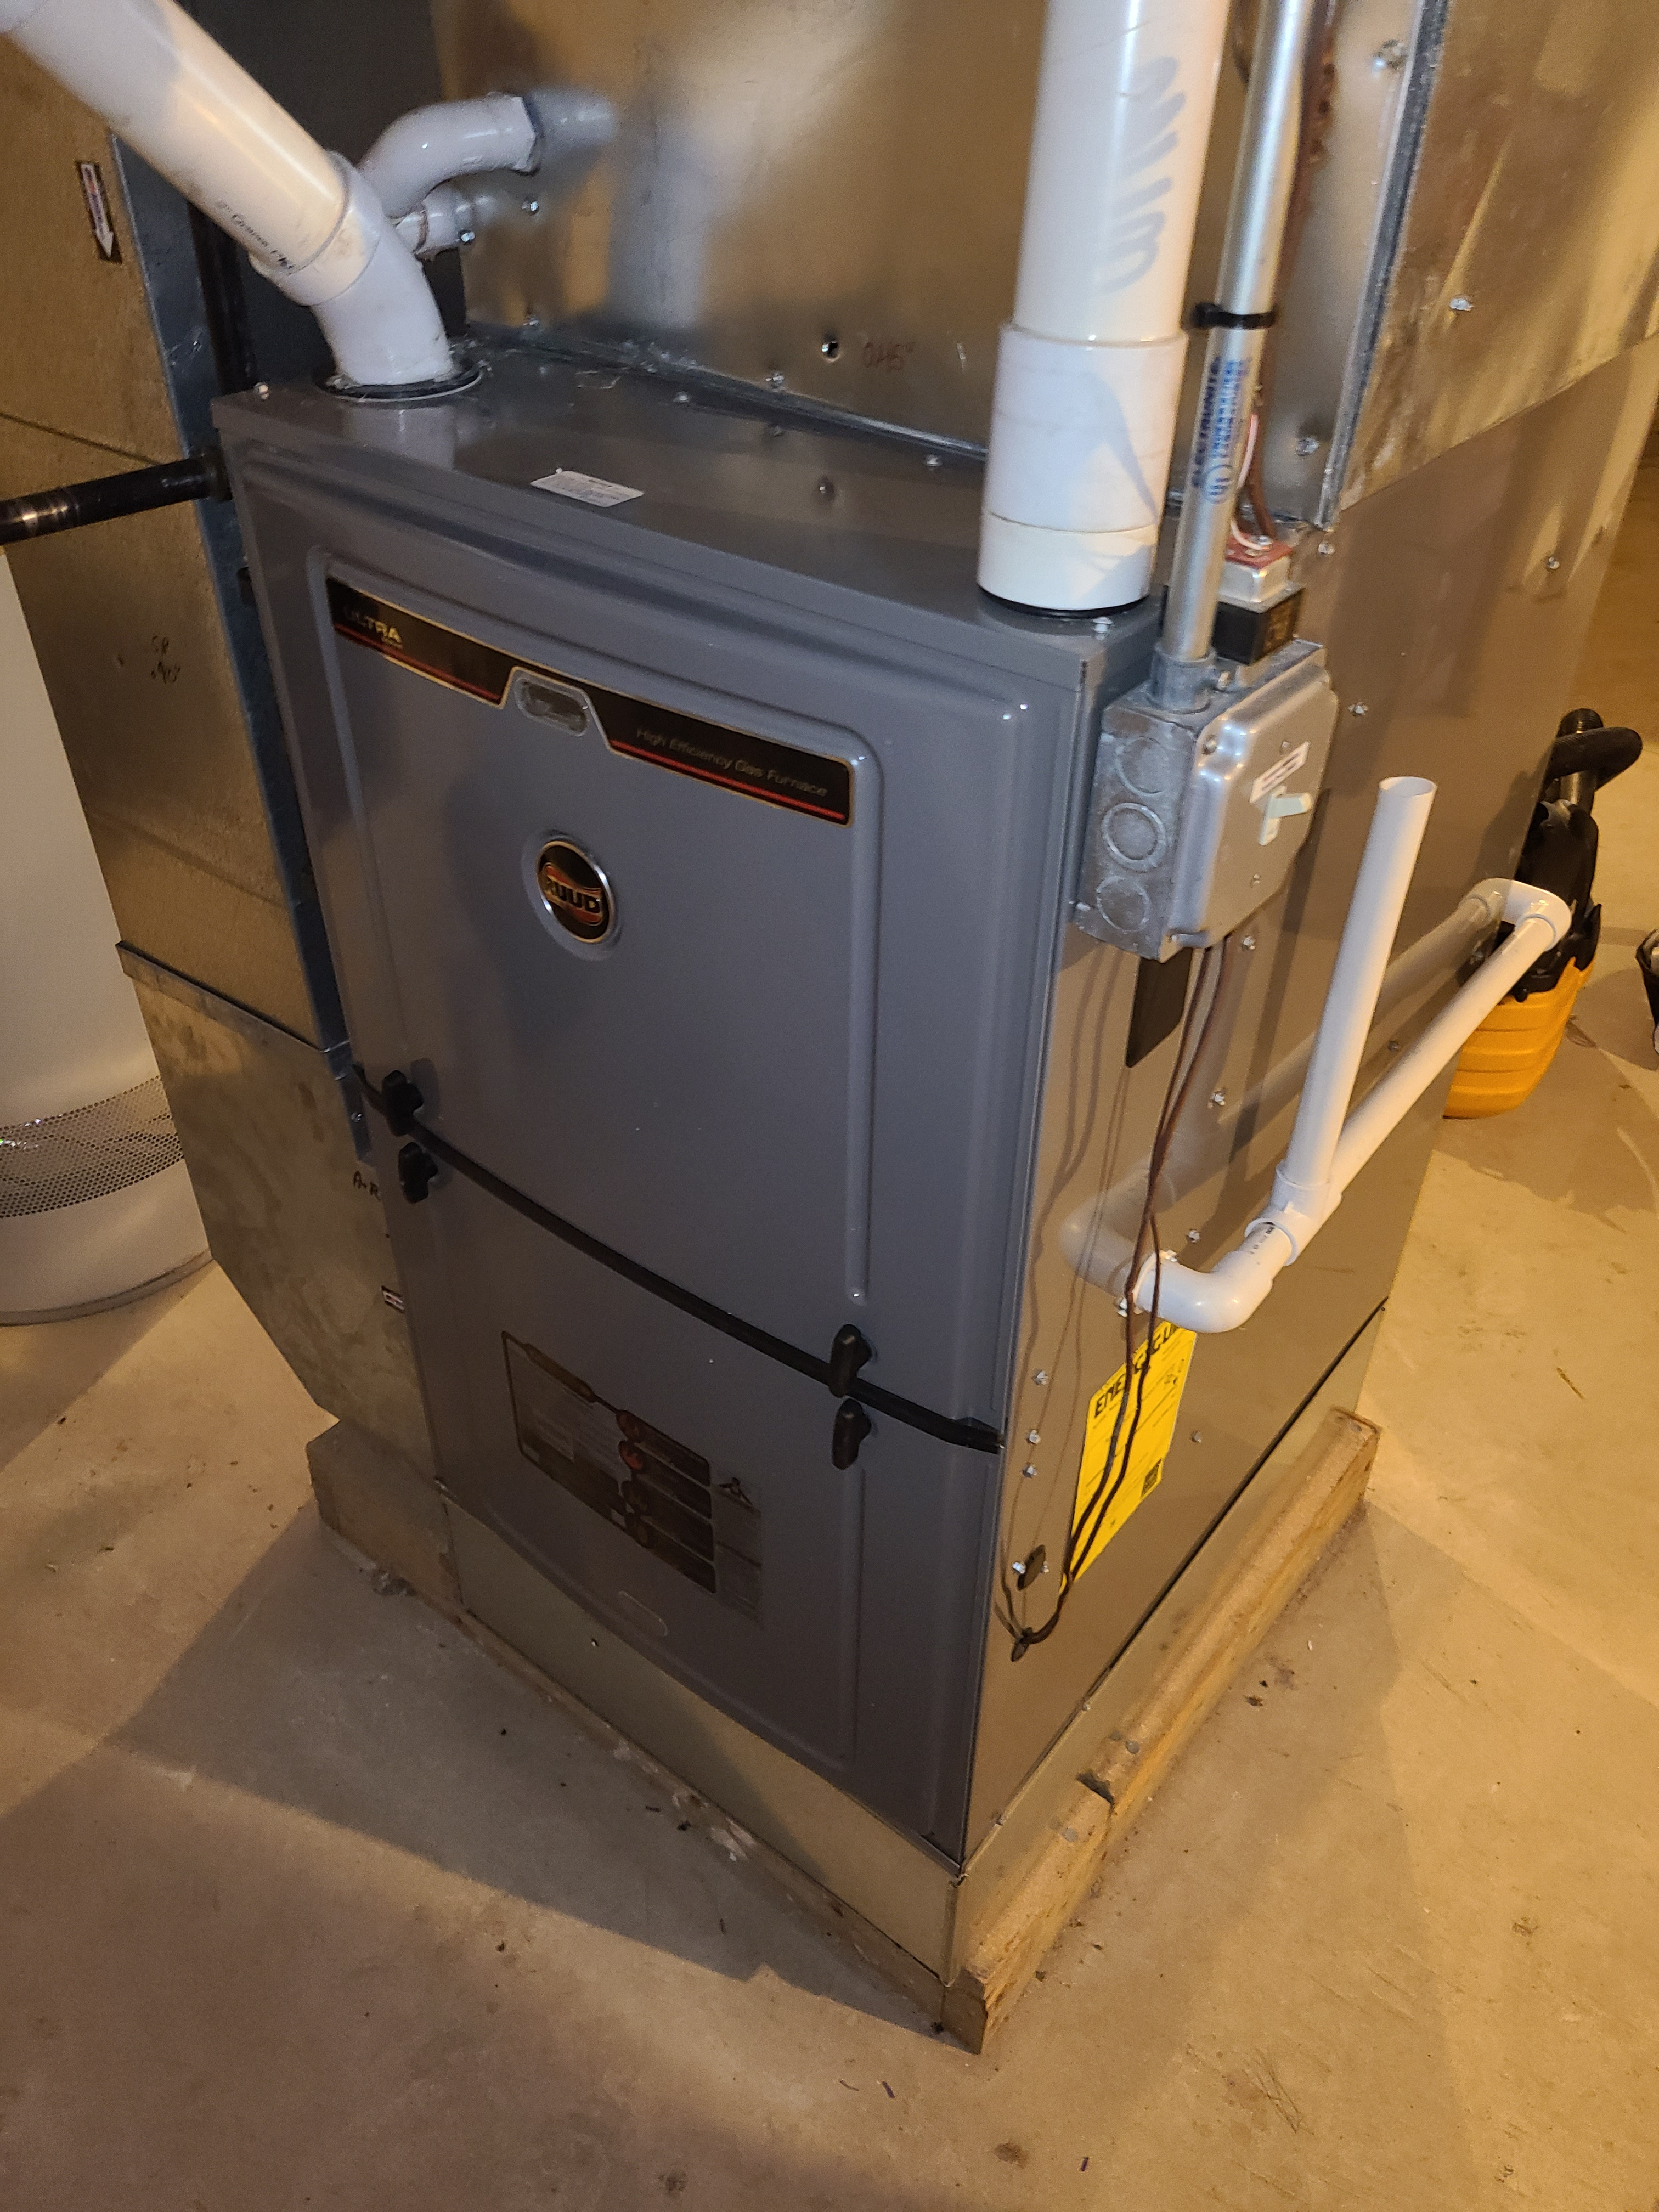 Ruud furnace fall clean and check. System tuned up and ready for winter.